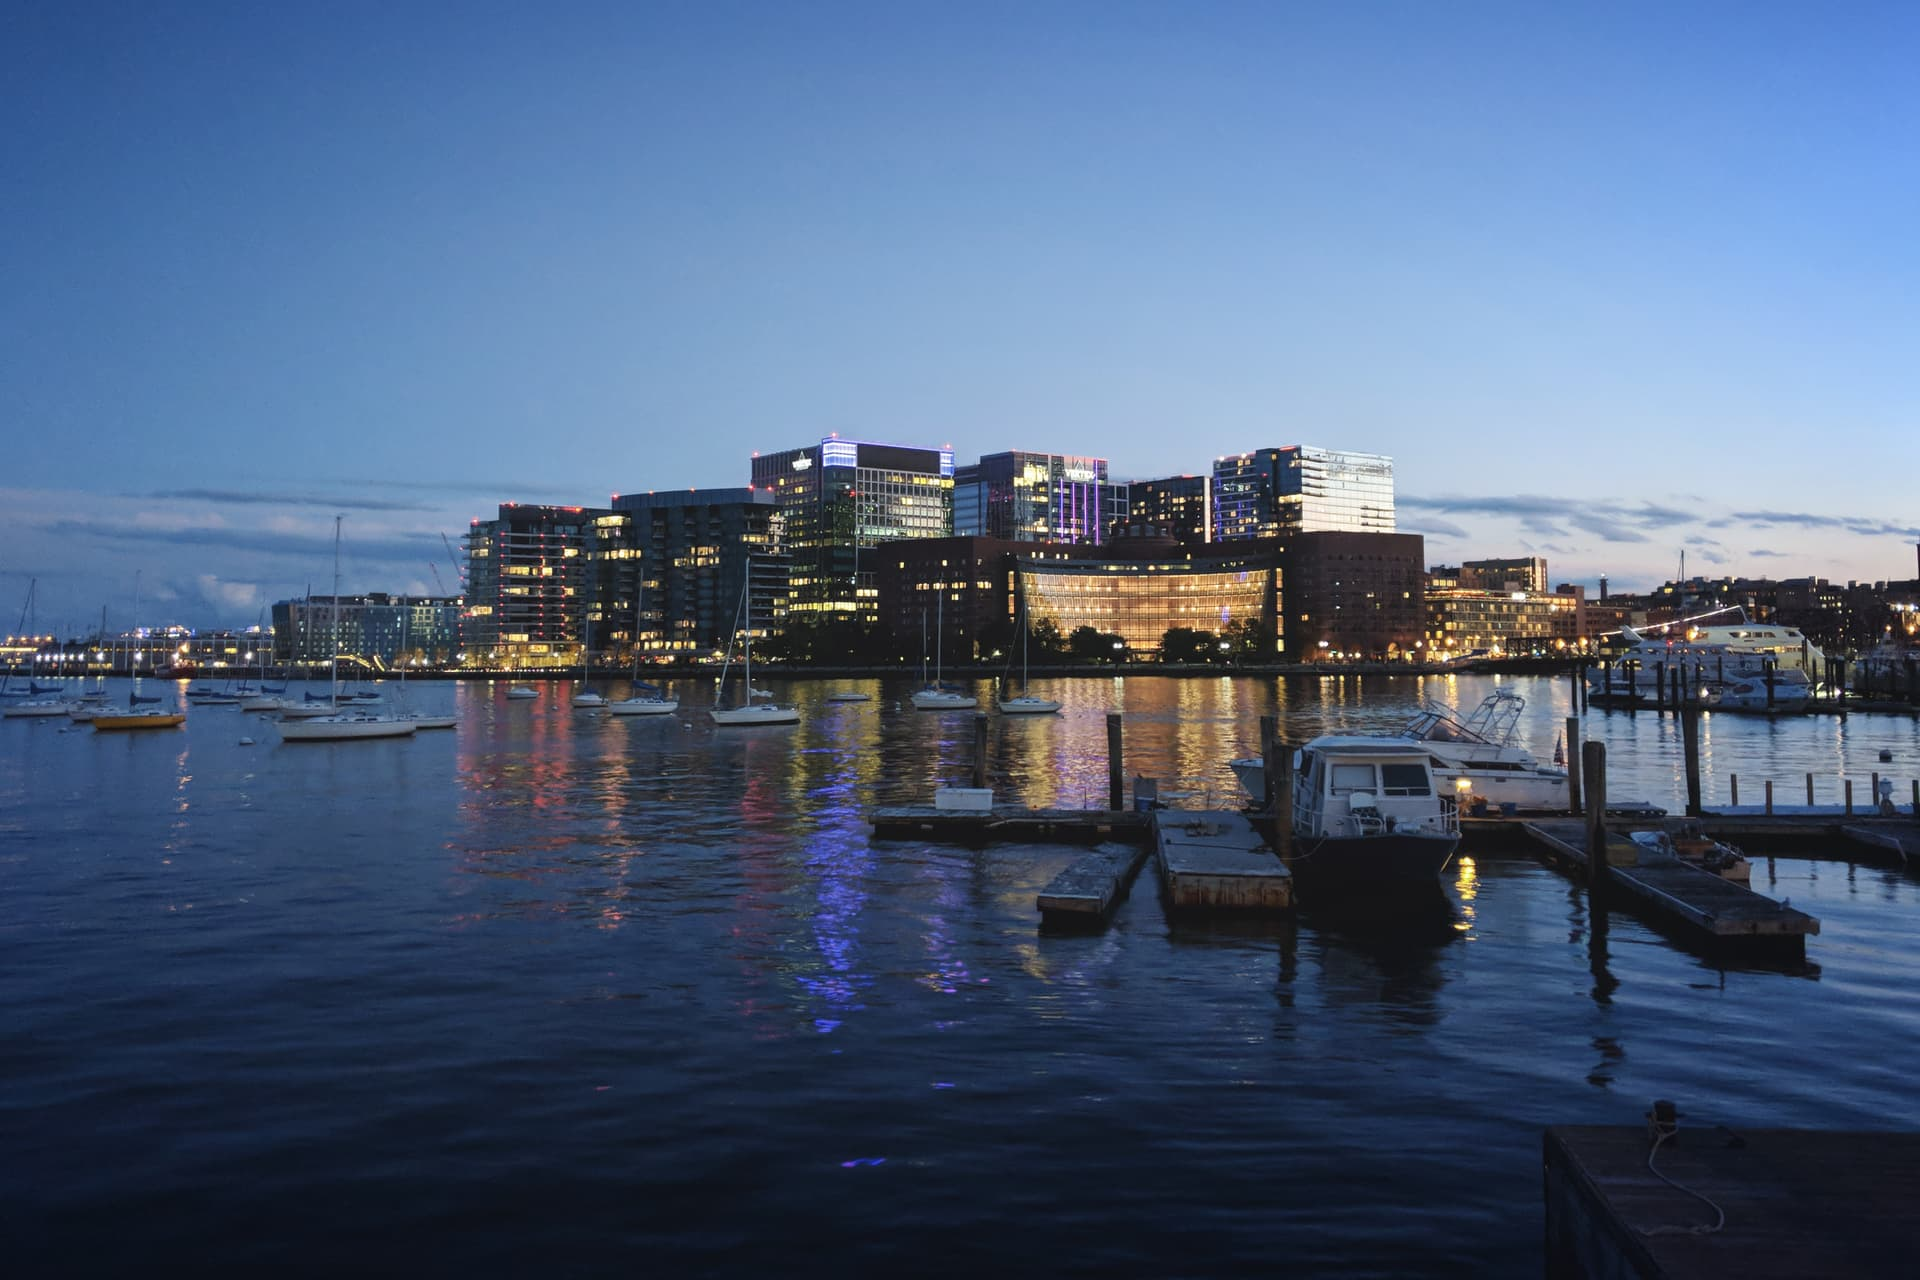 A tight cluster of buildings seen from across a small bay at dusk.